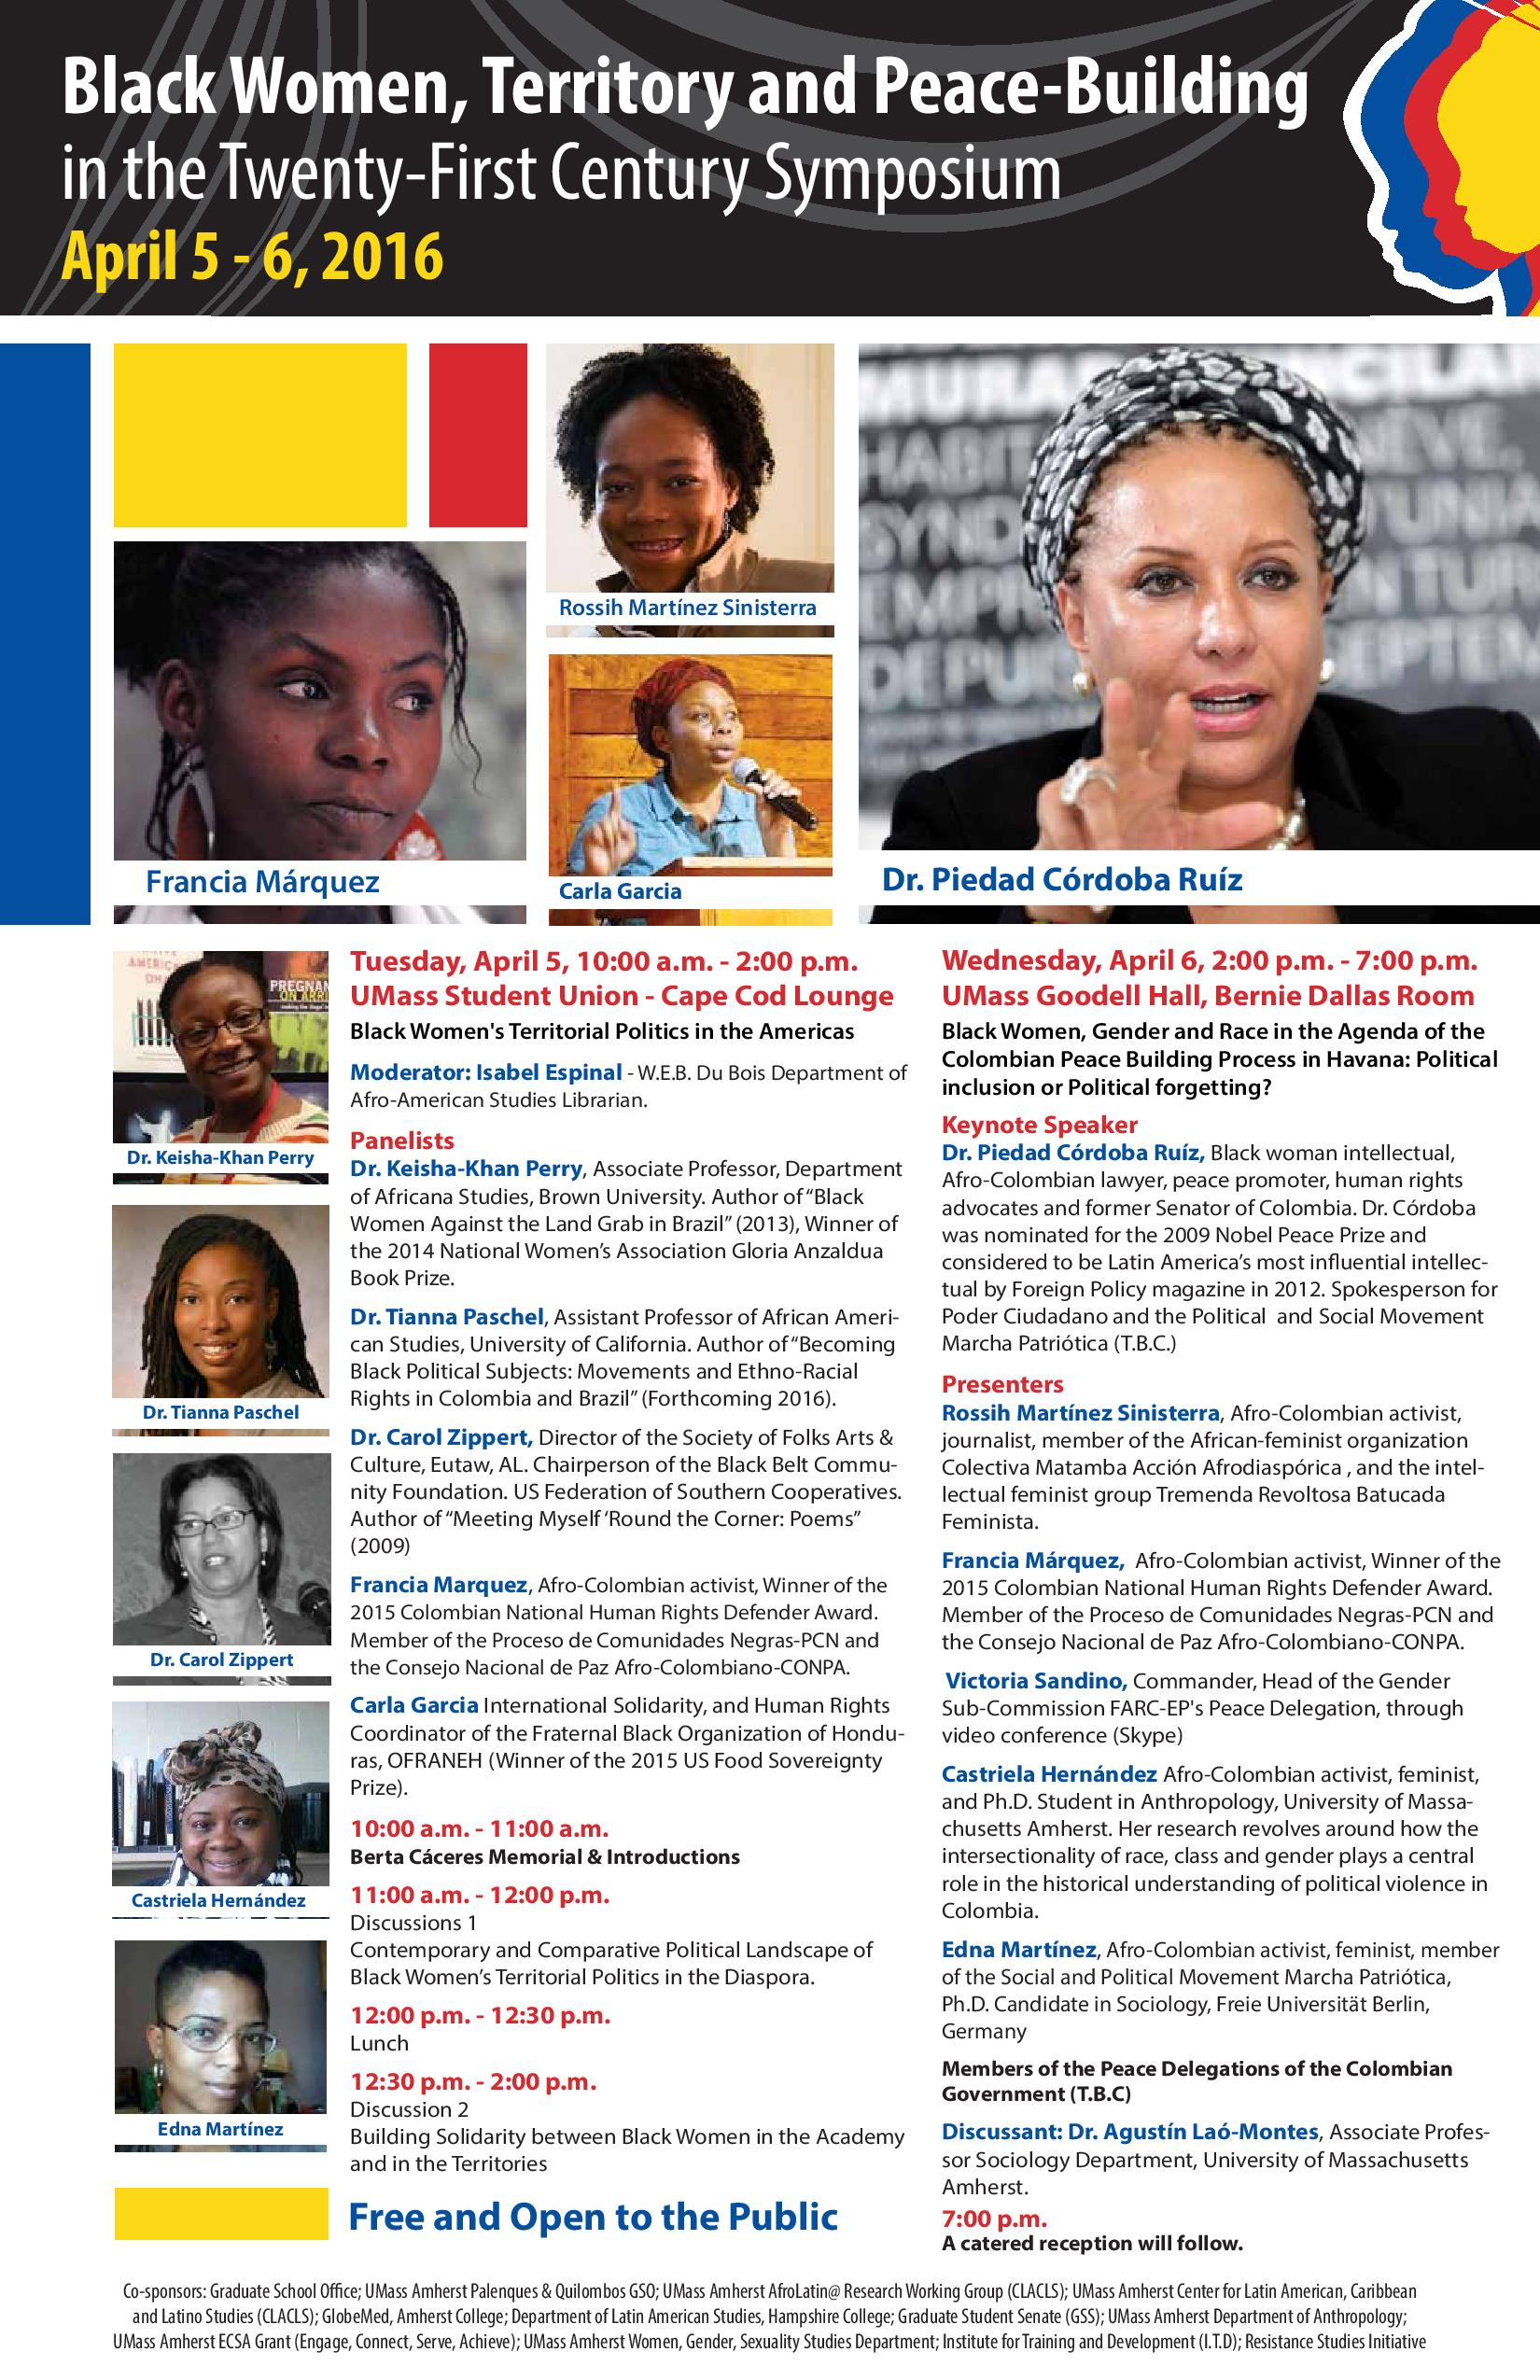 Black Women, Territory and Peace- Building in the Twenty